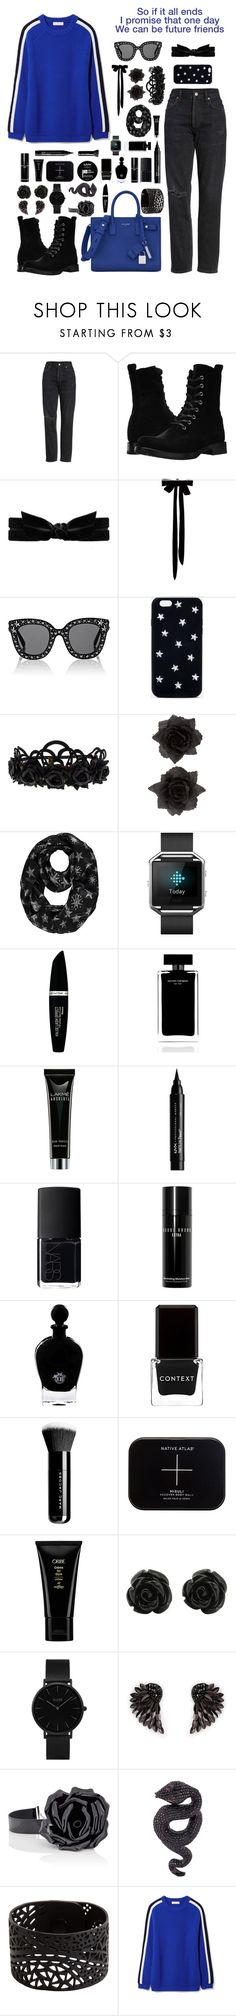 """""""Future Friends"""" by ciaobella18 ❤ liked on Polyvore featuring Citizens of Humanity, Frye, Gucci, STELLA McCARTNEY, George, Fitbit, Max Factor, Narciso Rodriguez, NYX and NARS Cosmetics"""